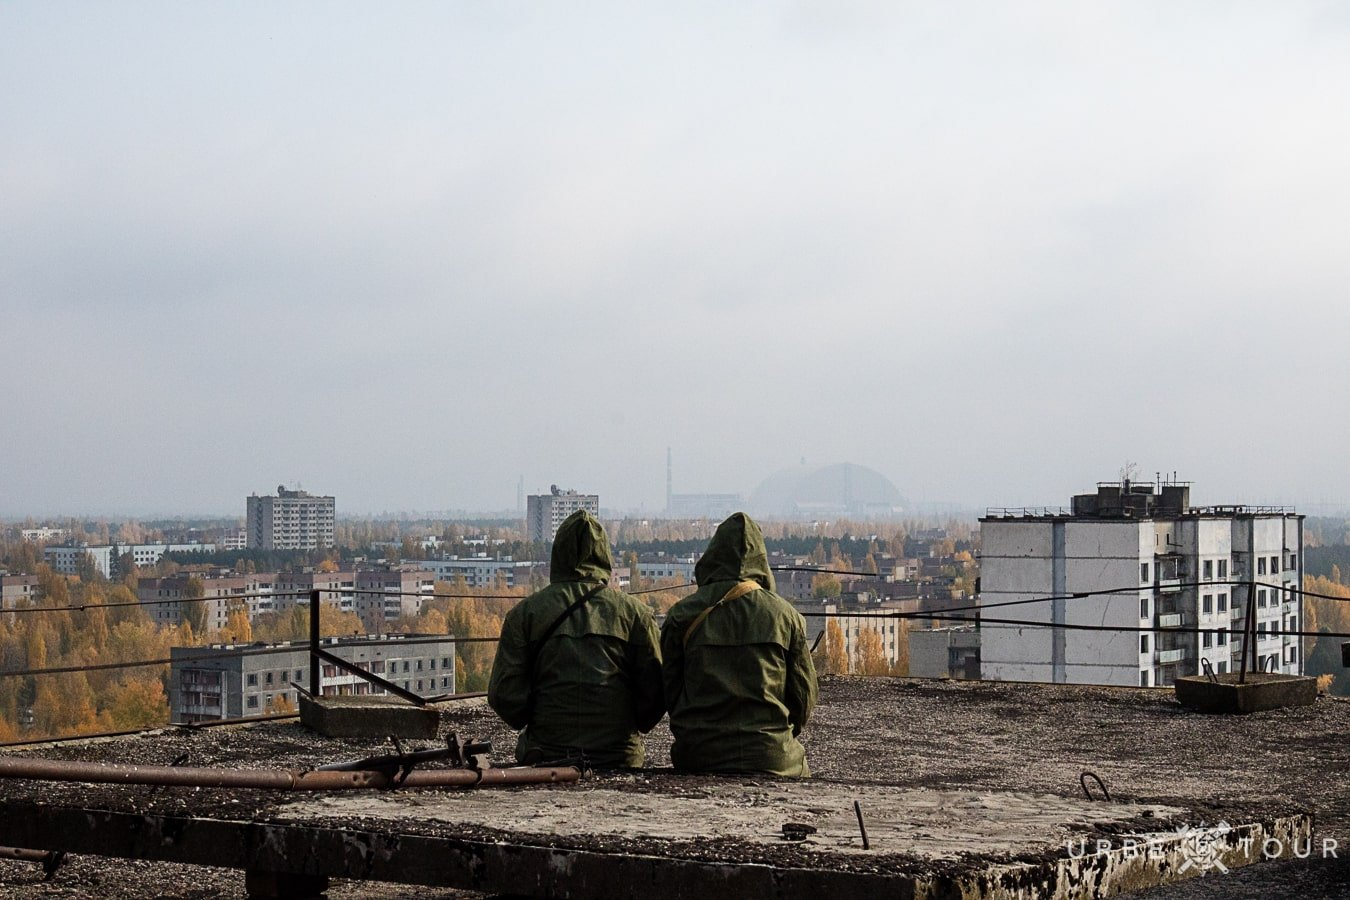 Stalkers on the rooftop in Prypiat